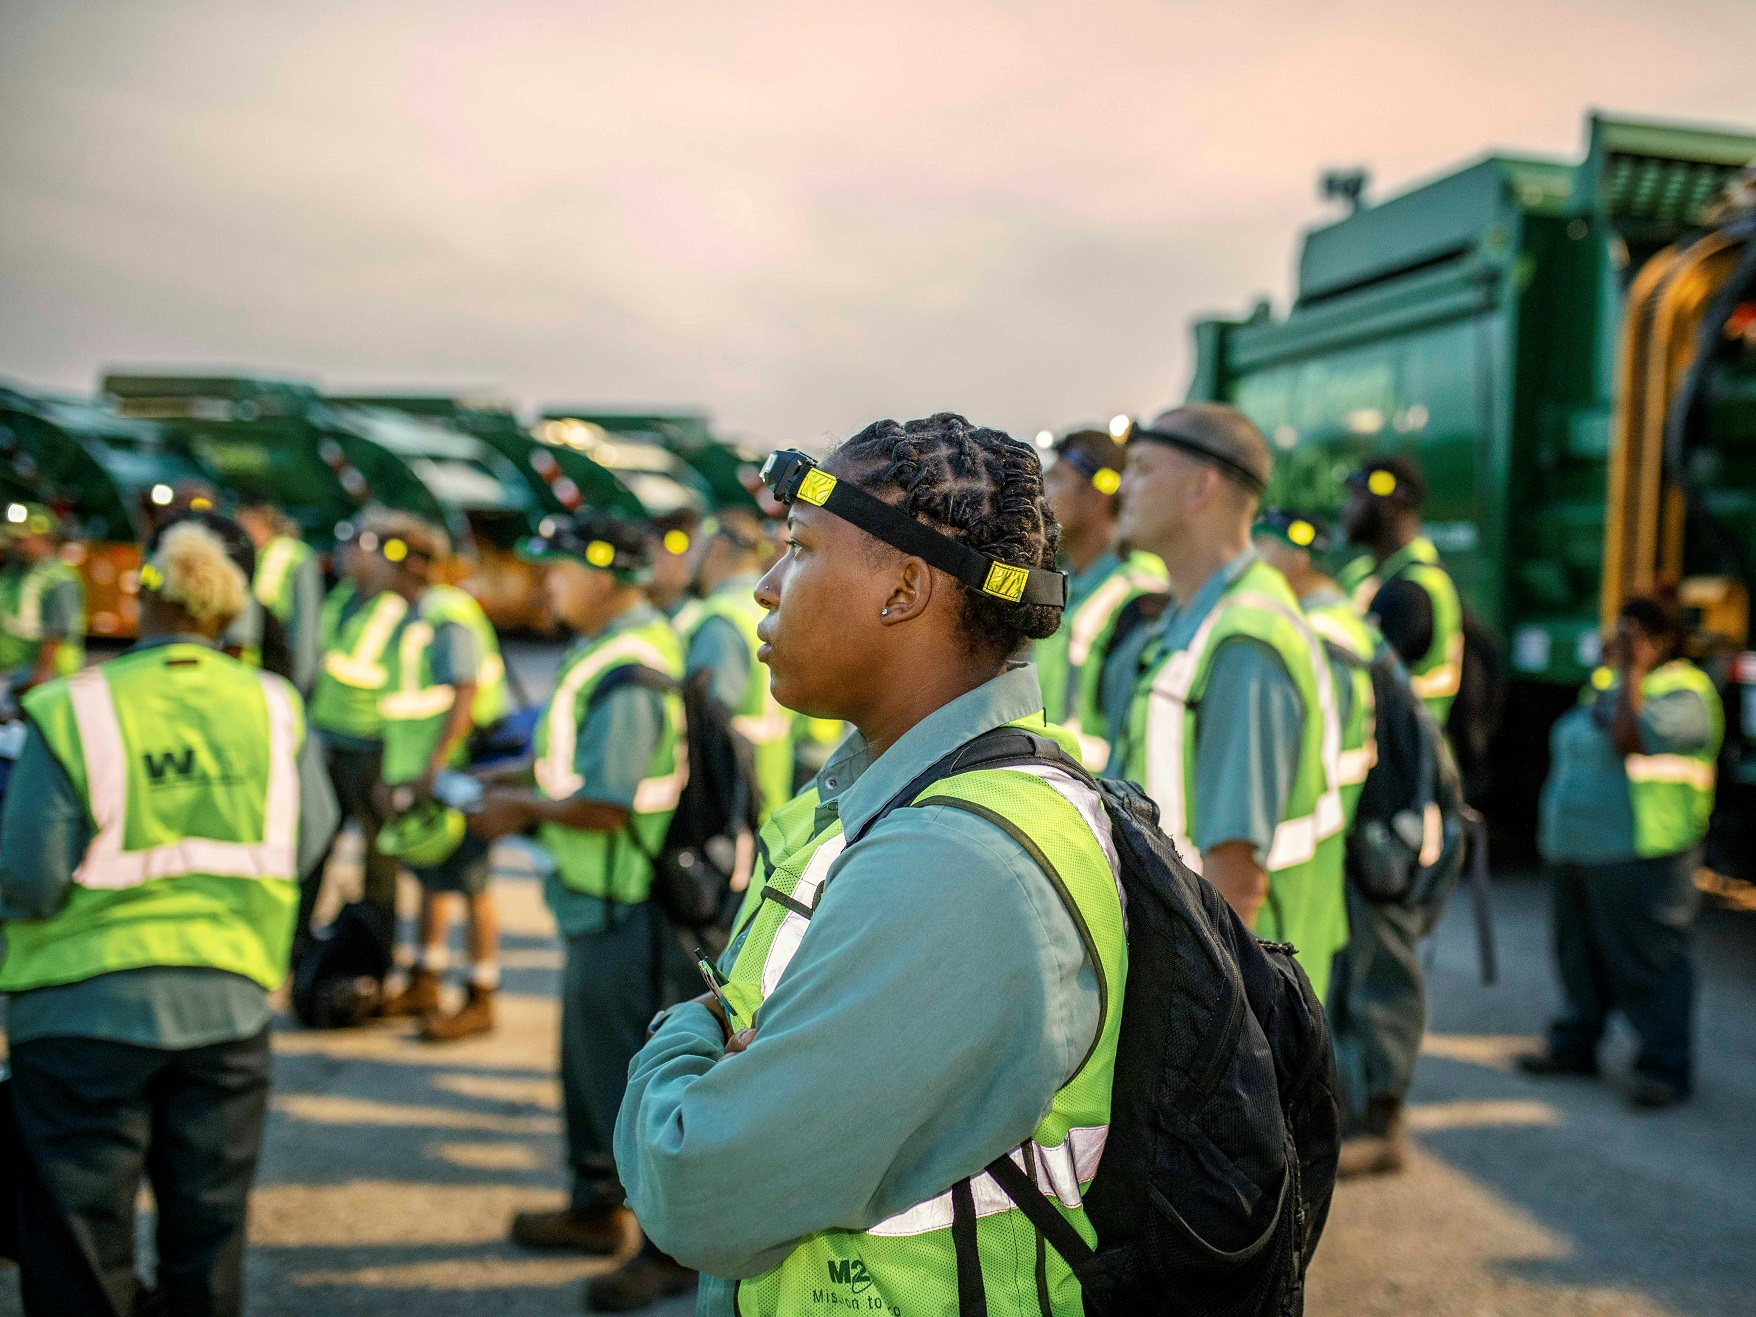 Careers at Waste Management | Job opportunities at Waste